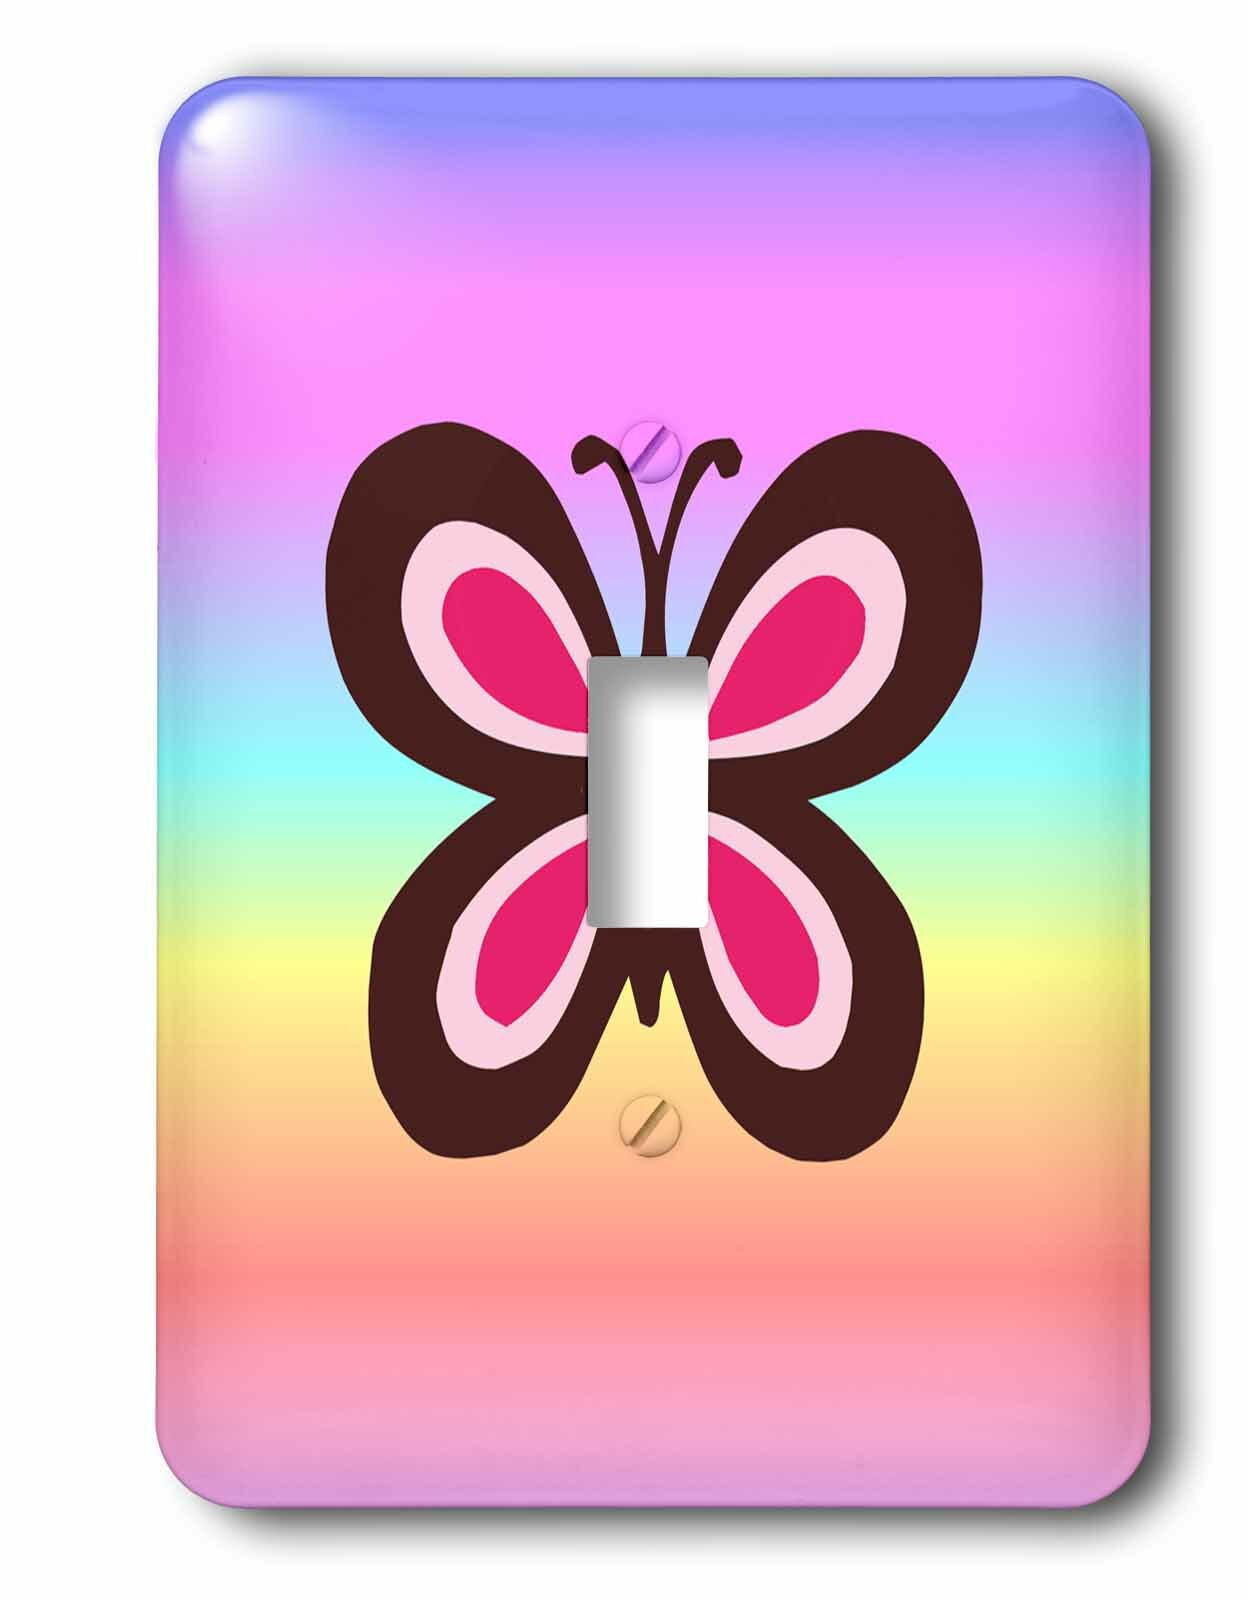 3drose Switch Butterfly 1 Gang Toggle Light Switch Wall Plate Wayfair